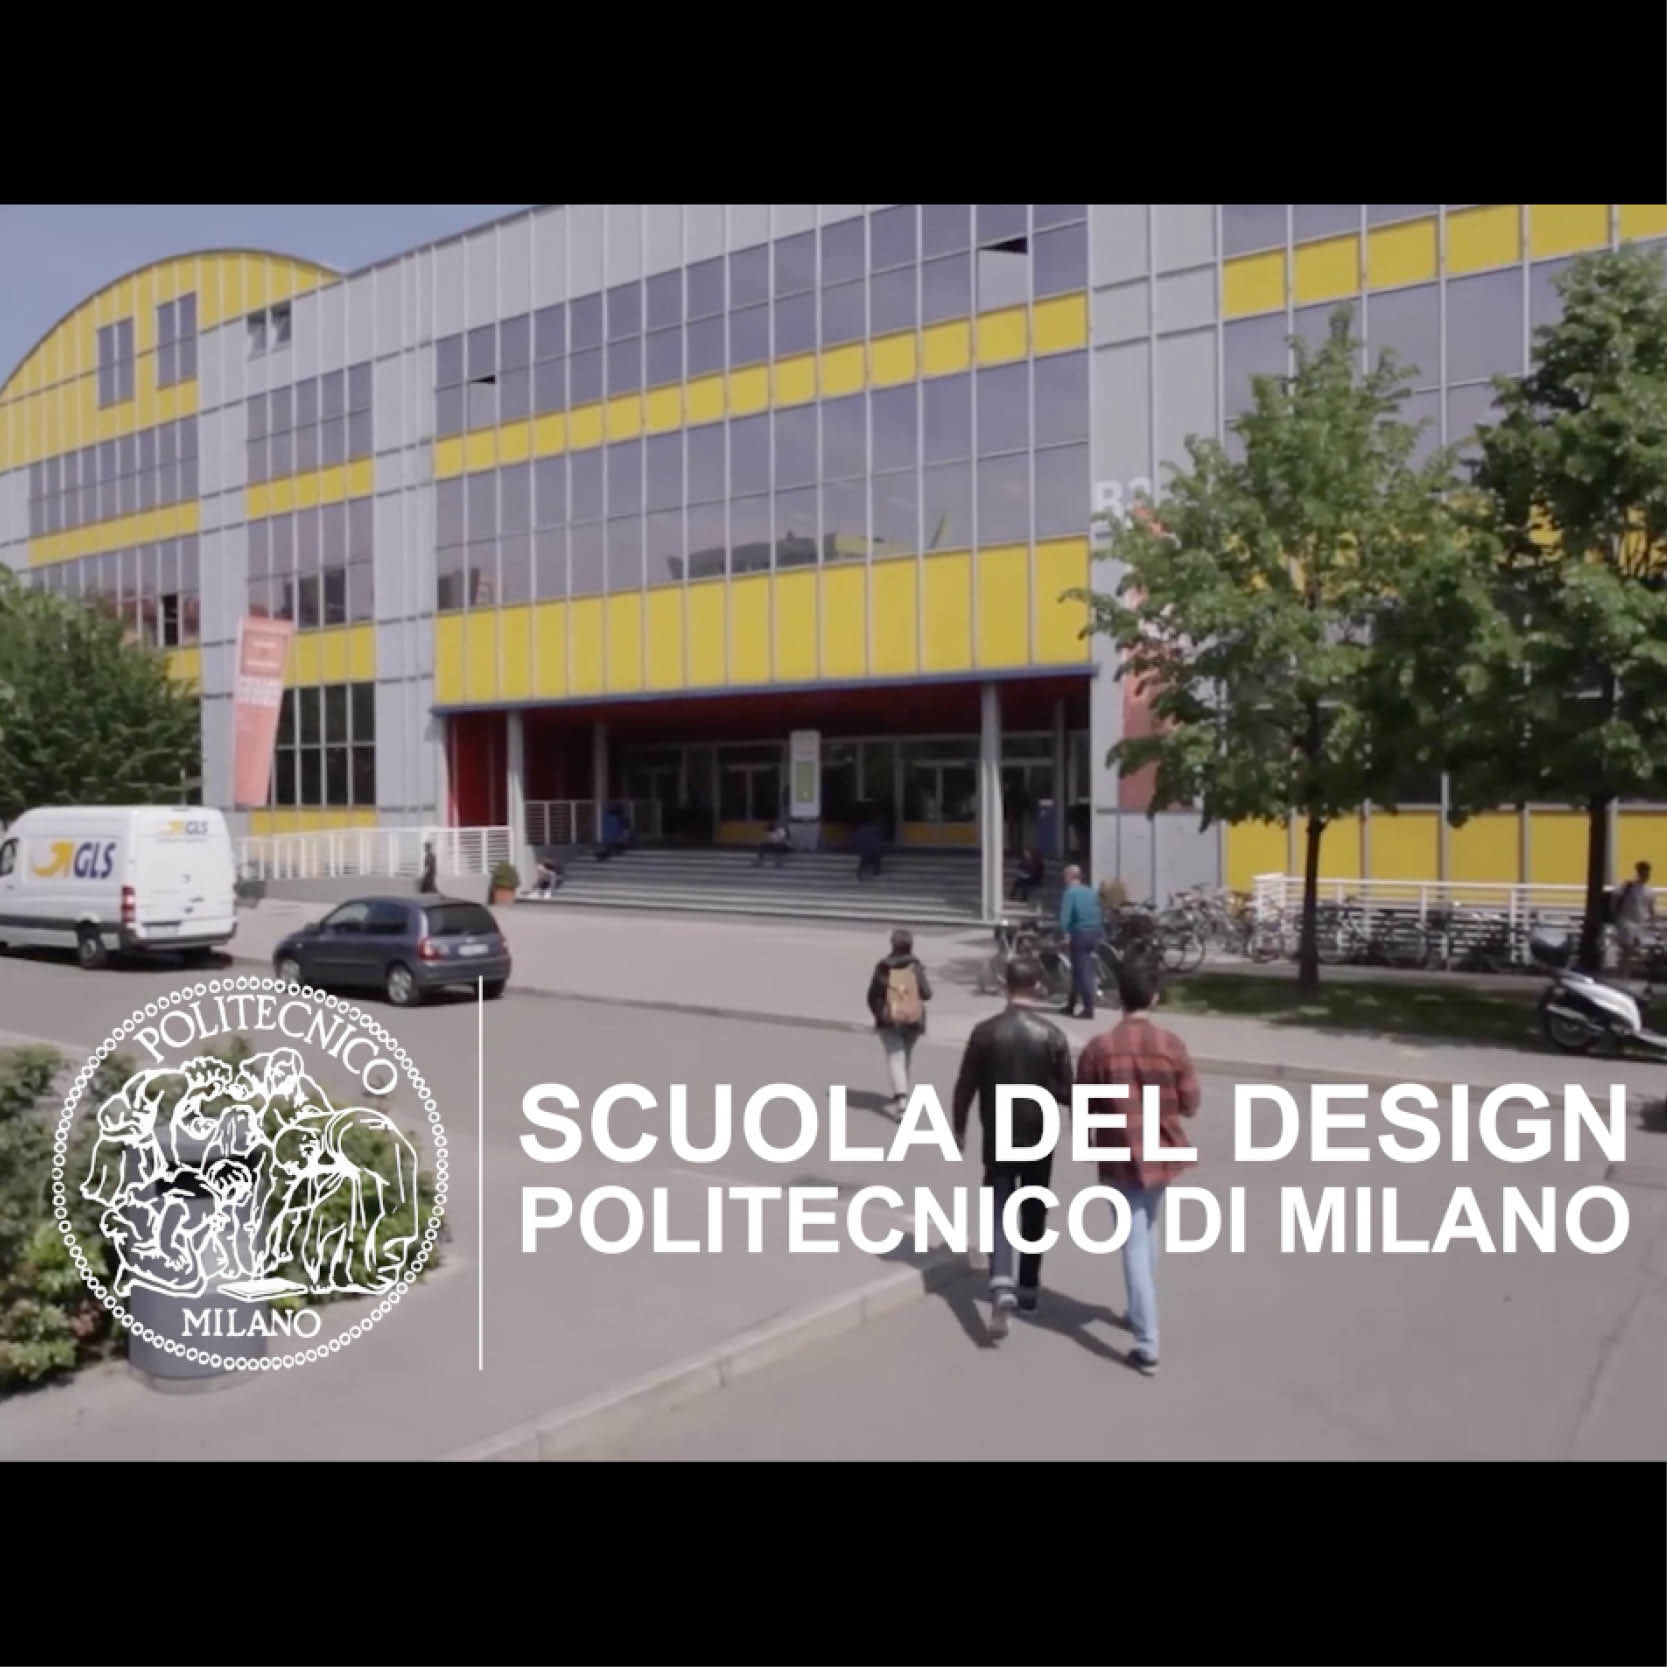 Scab design workshop politecnico di milano for Politecnico design